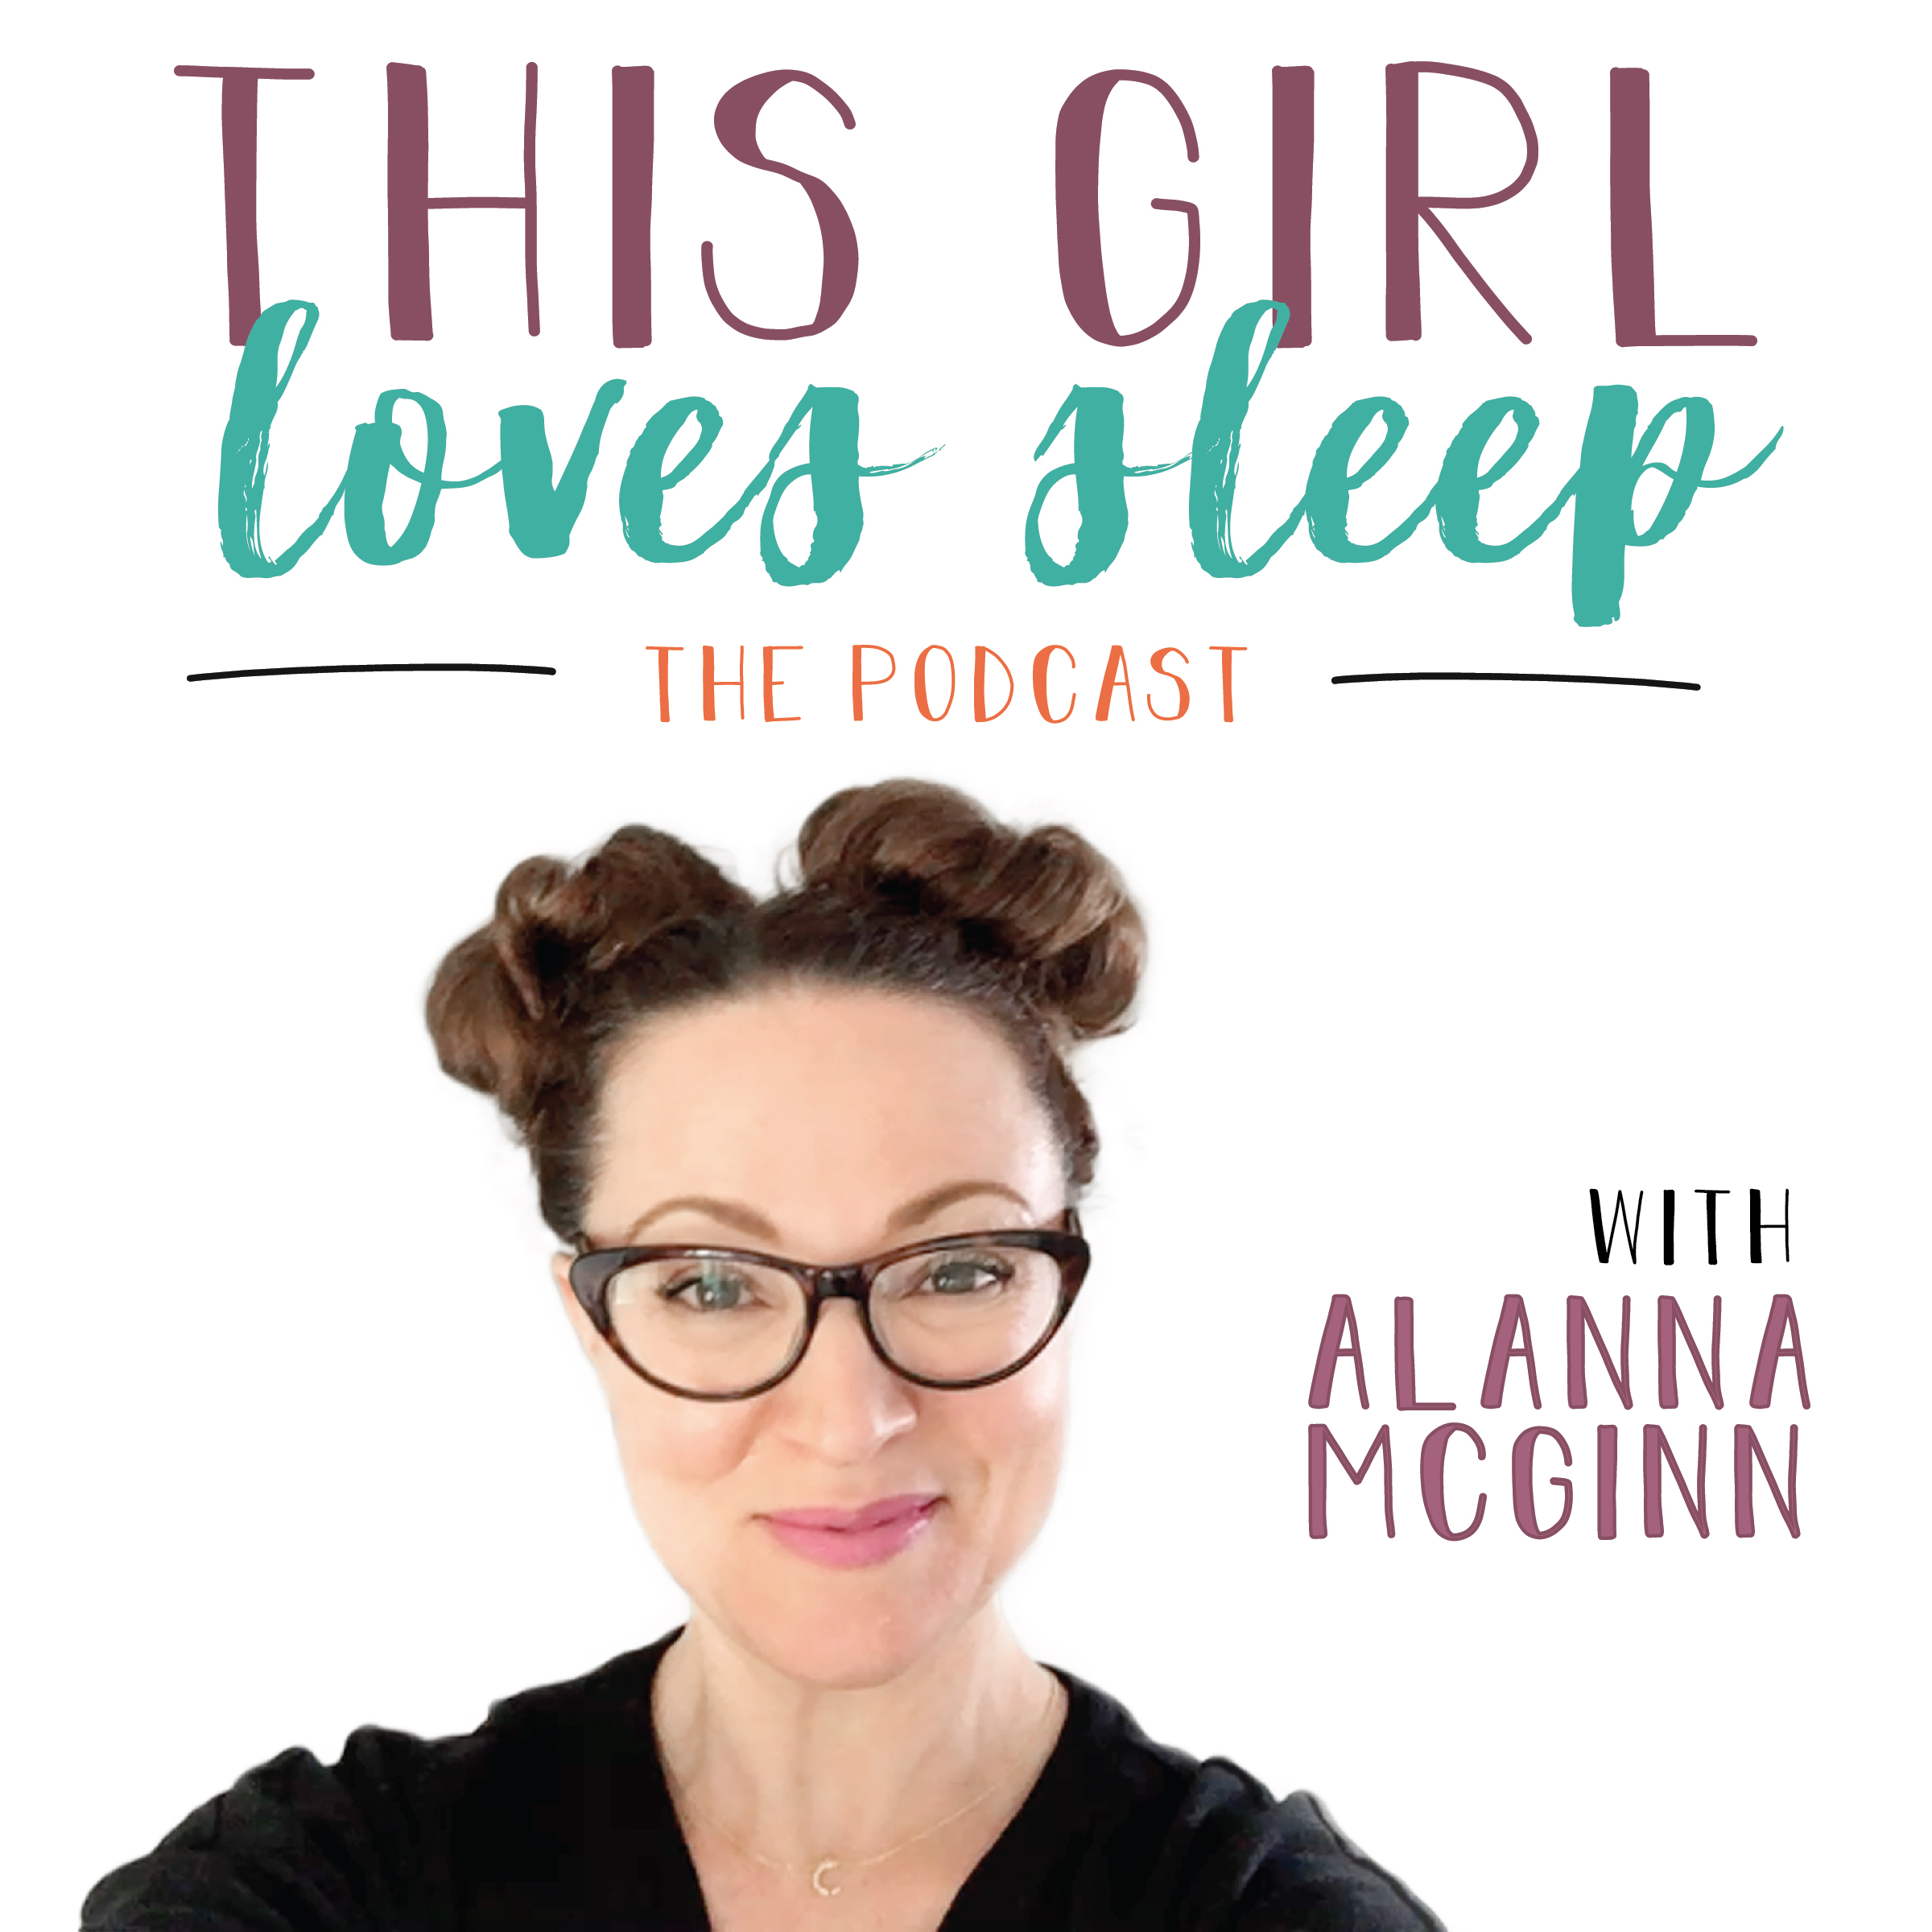 Episode 17: Why This Girl Loves Sleep